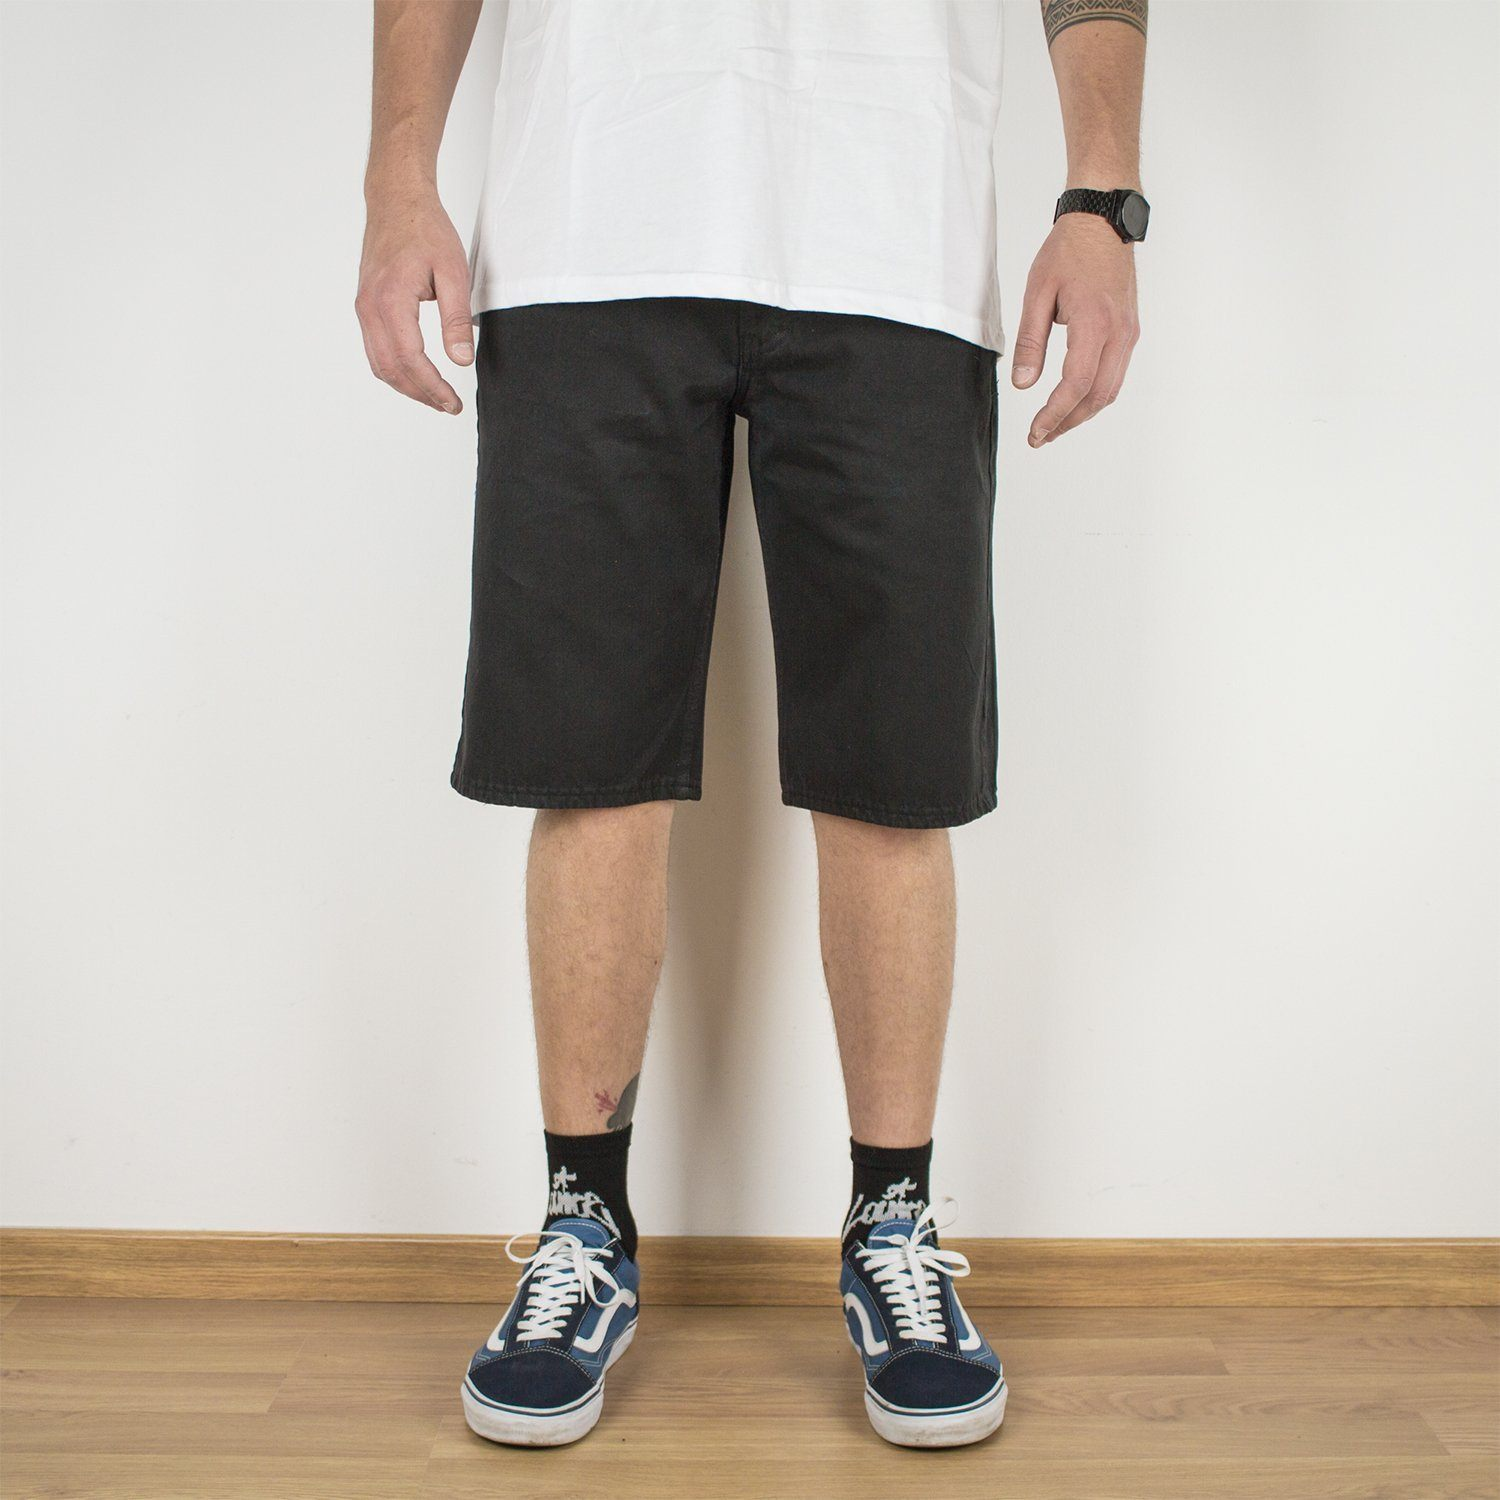 Shorts - 5-POCKET BLACK SHORTS